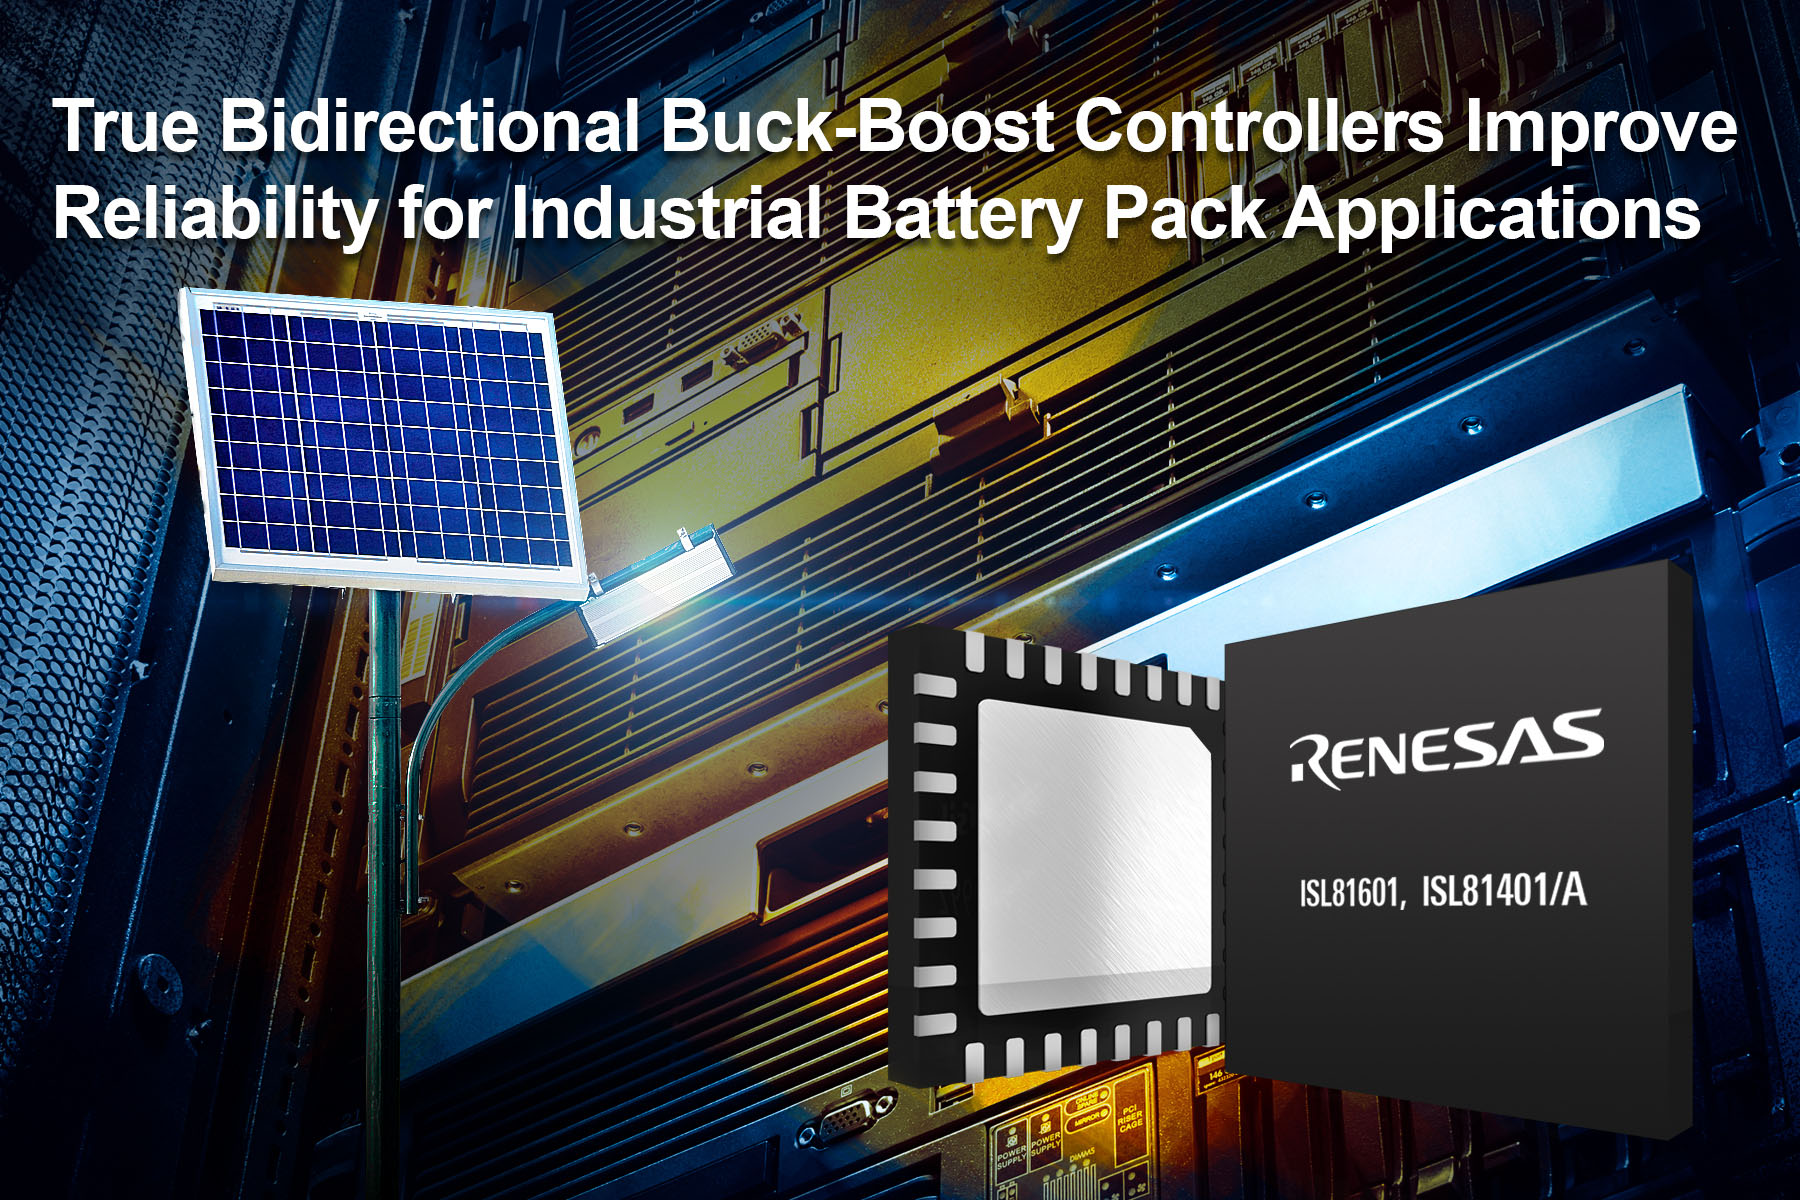 Buck-Boost Controllers for Industrial Battery-Powered Applications